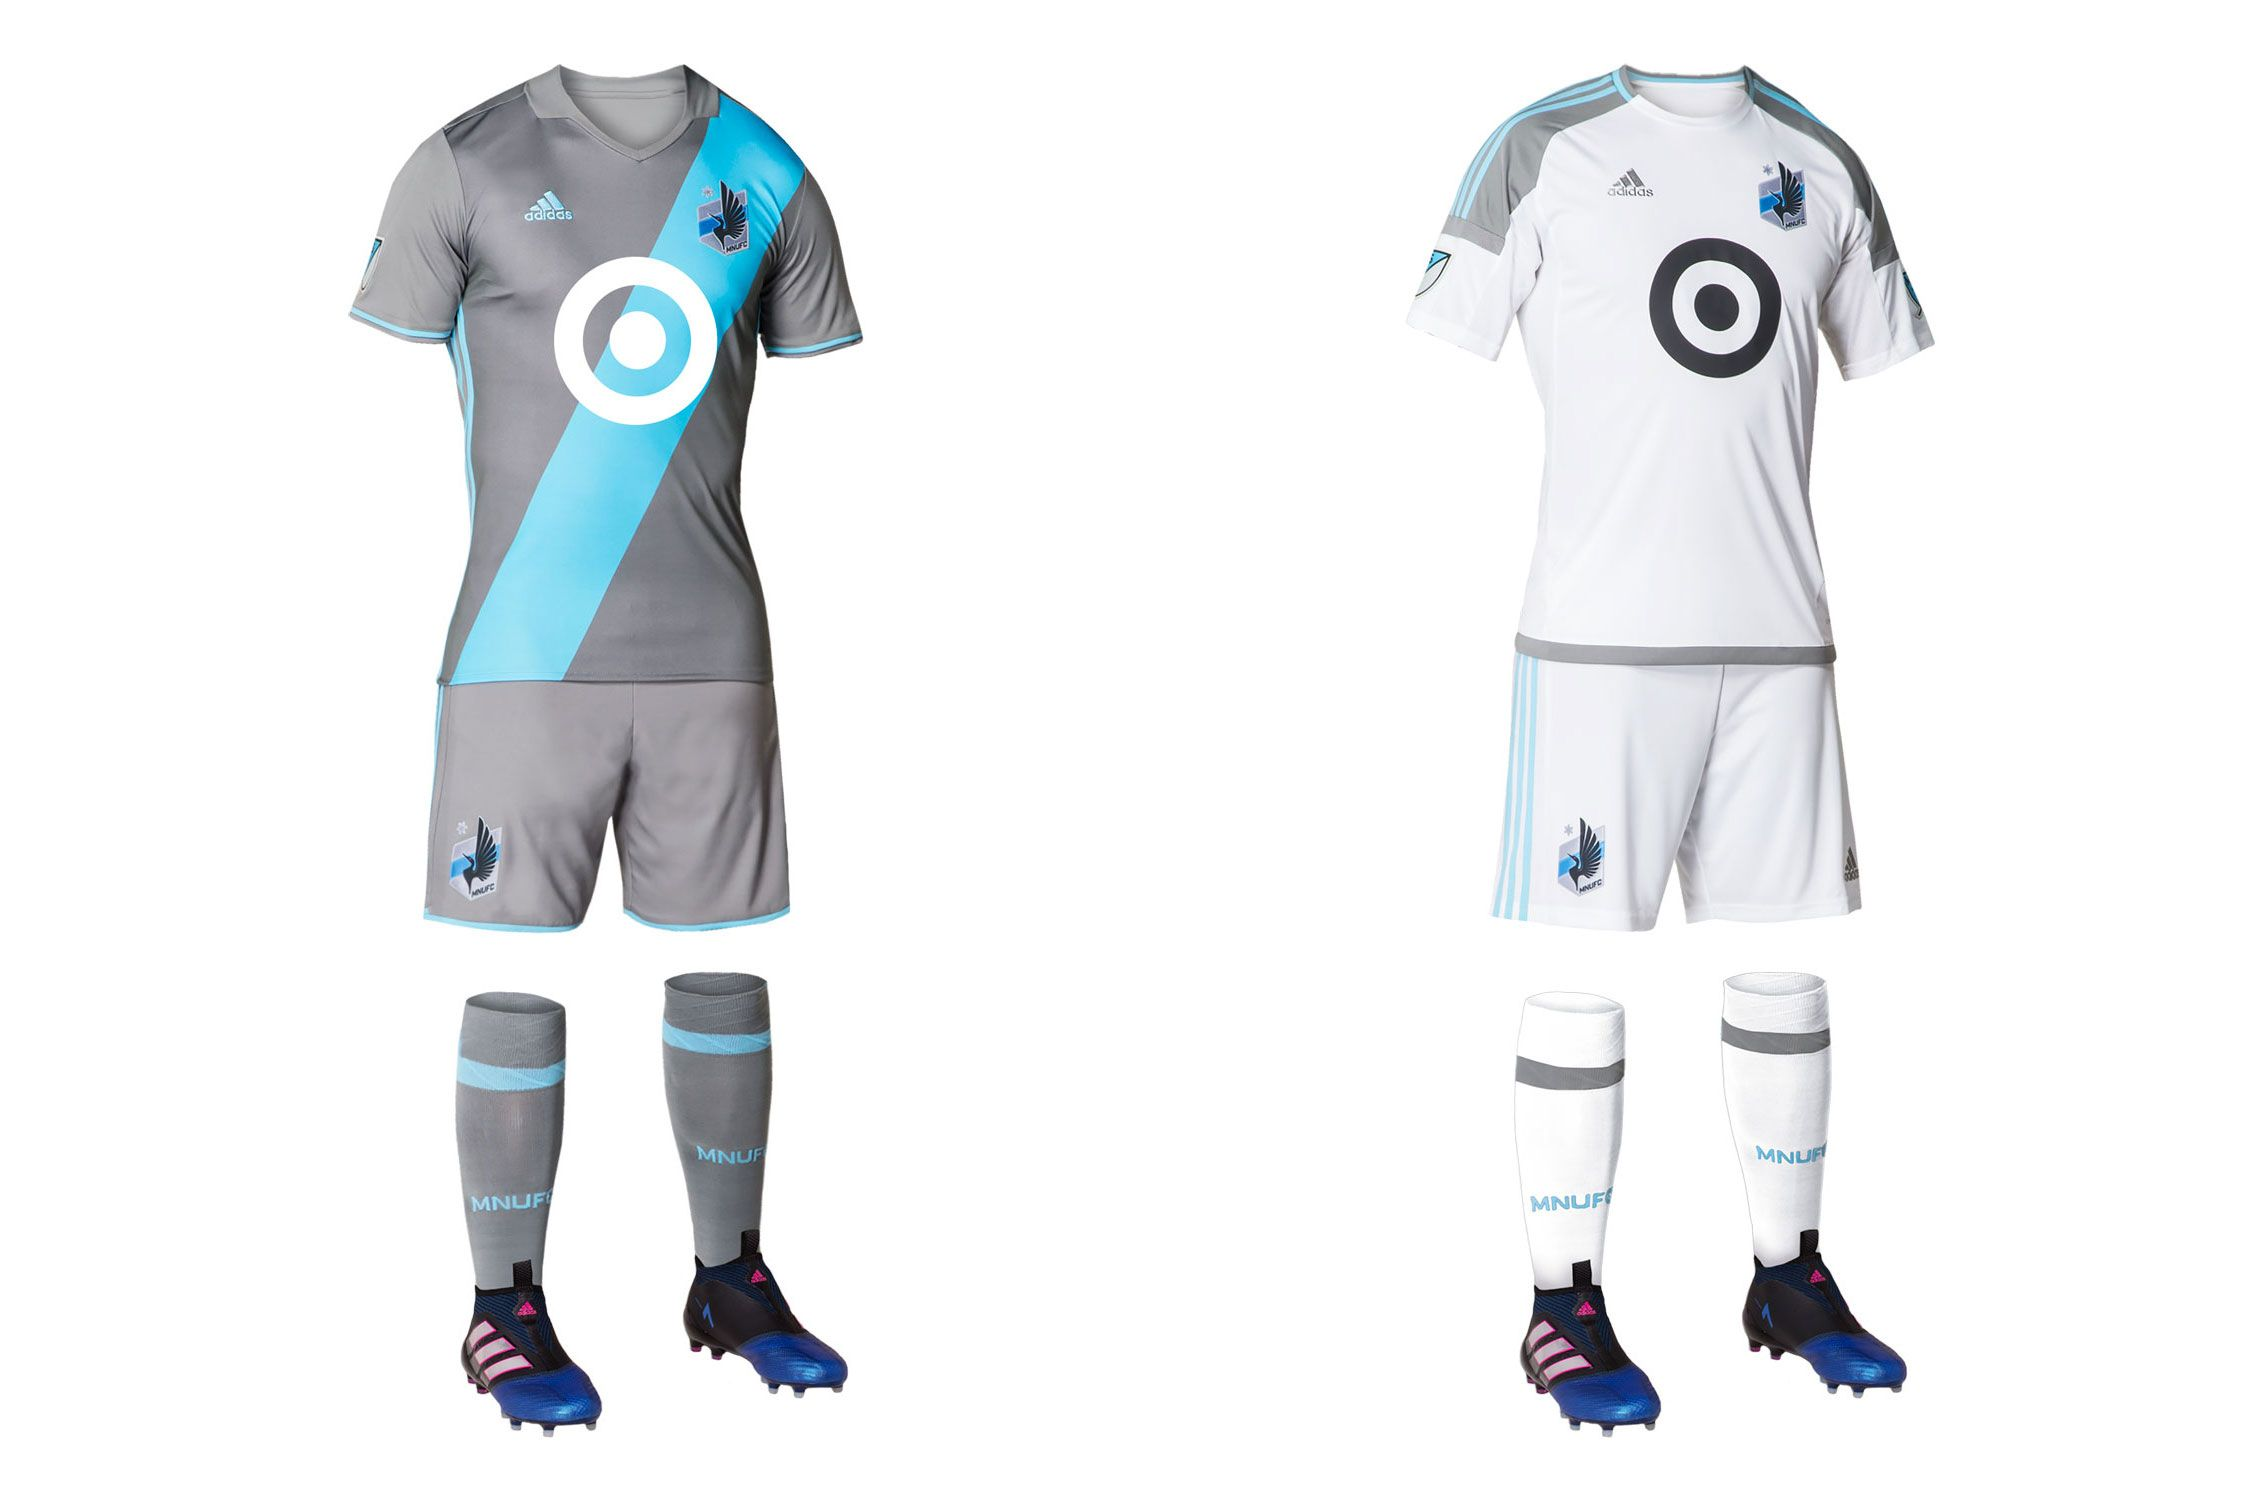 aa9bb2c90aa Photos  All of the 2017 MLS uniforms